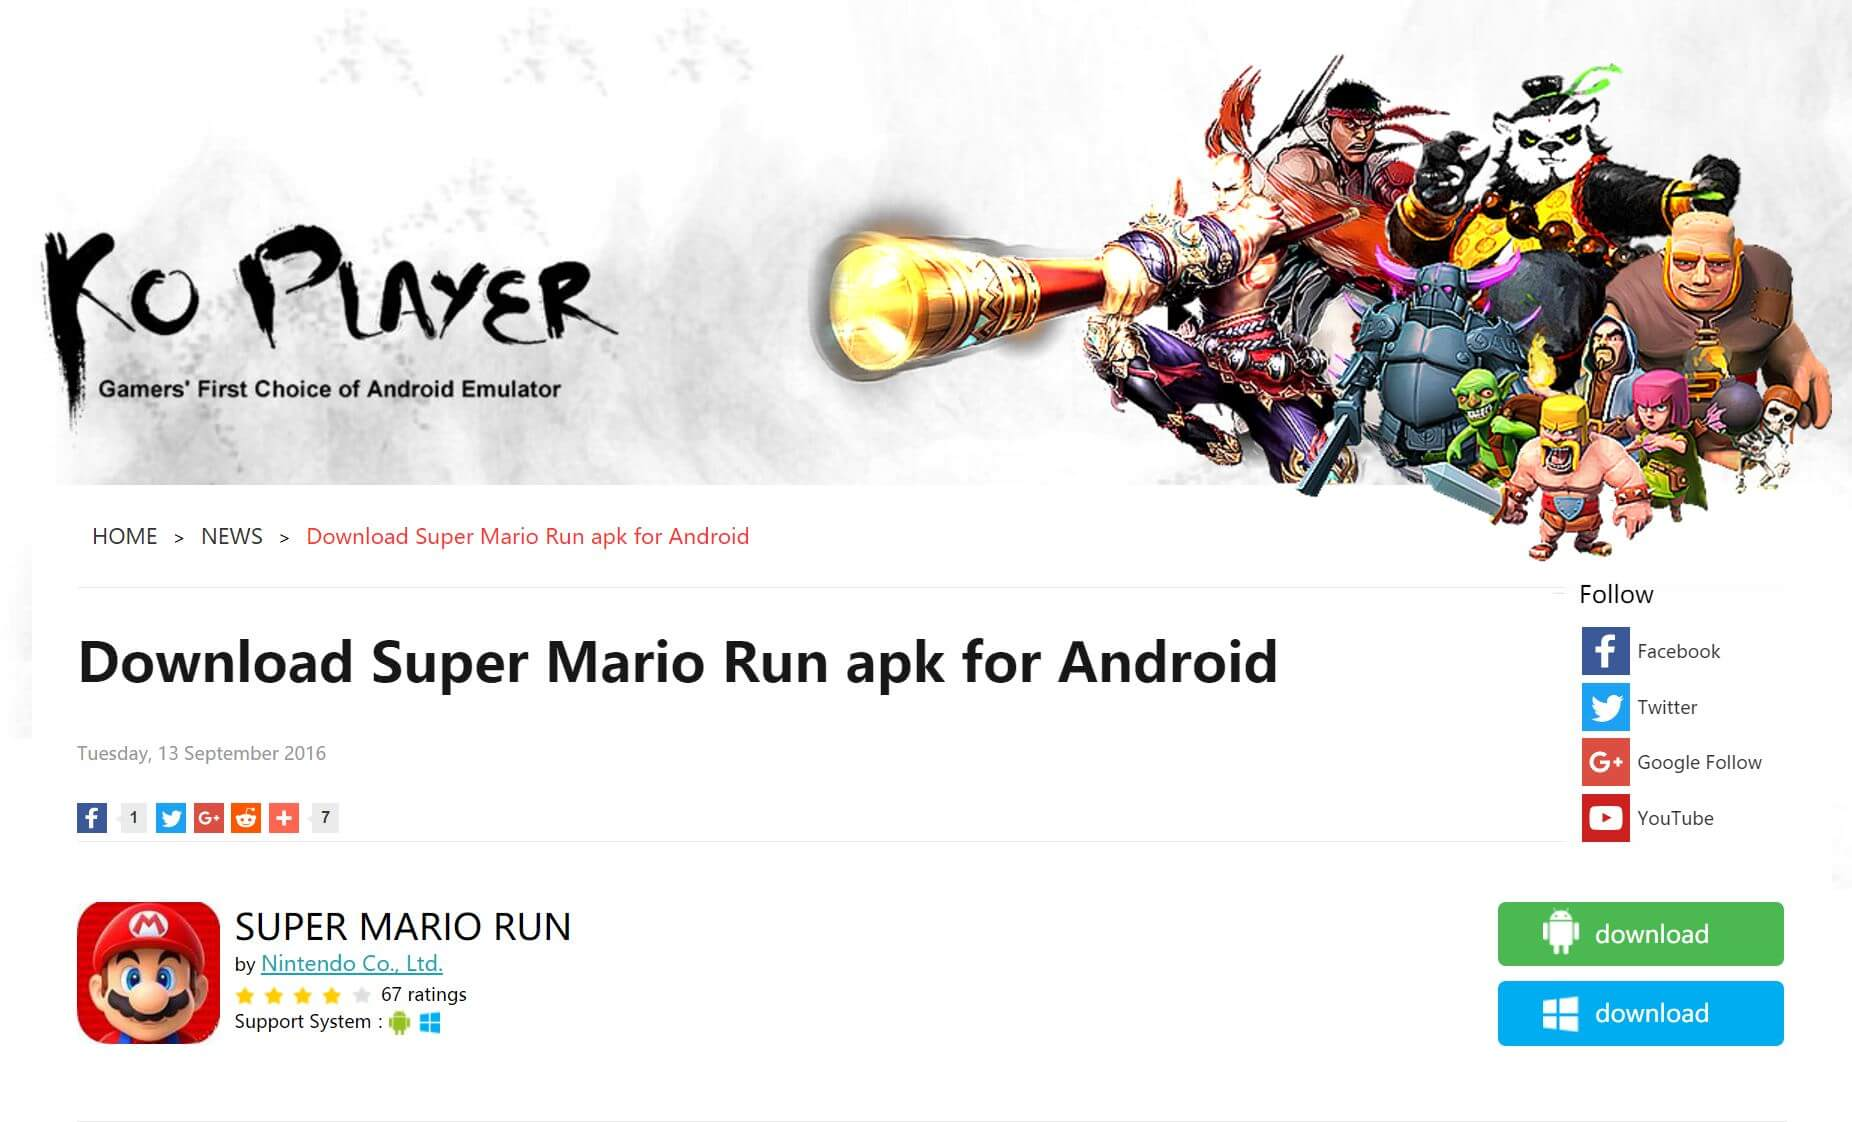 Did you download a Super Mario Run APK for Android? That's malware